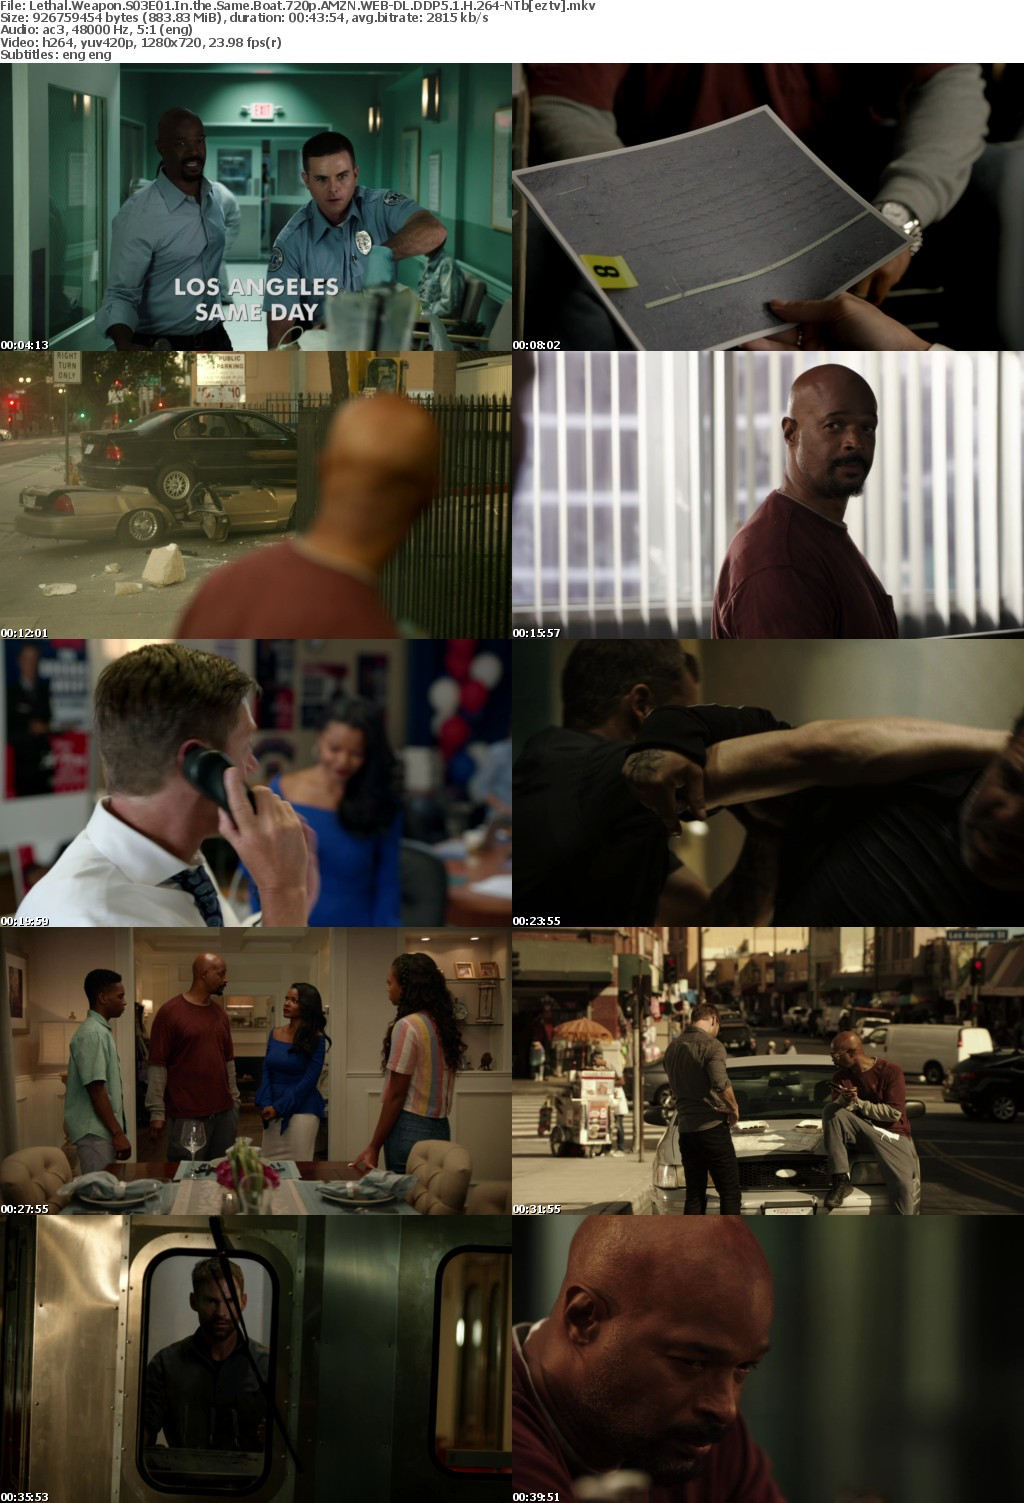 Lethal Weapon S03E01 In the Same Boat 720p AMZN WEB-DL DDP5 1 H 264-NTb